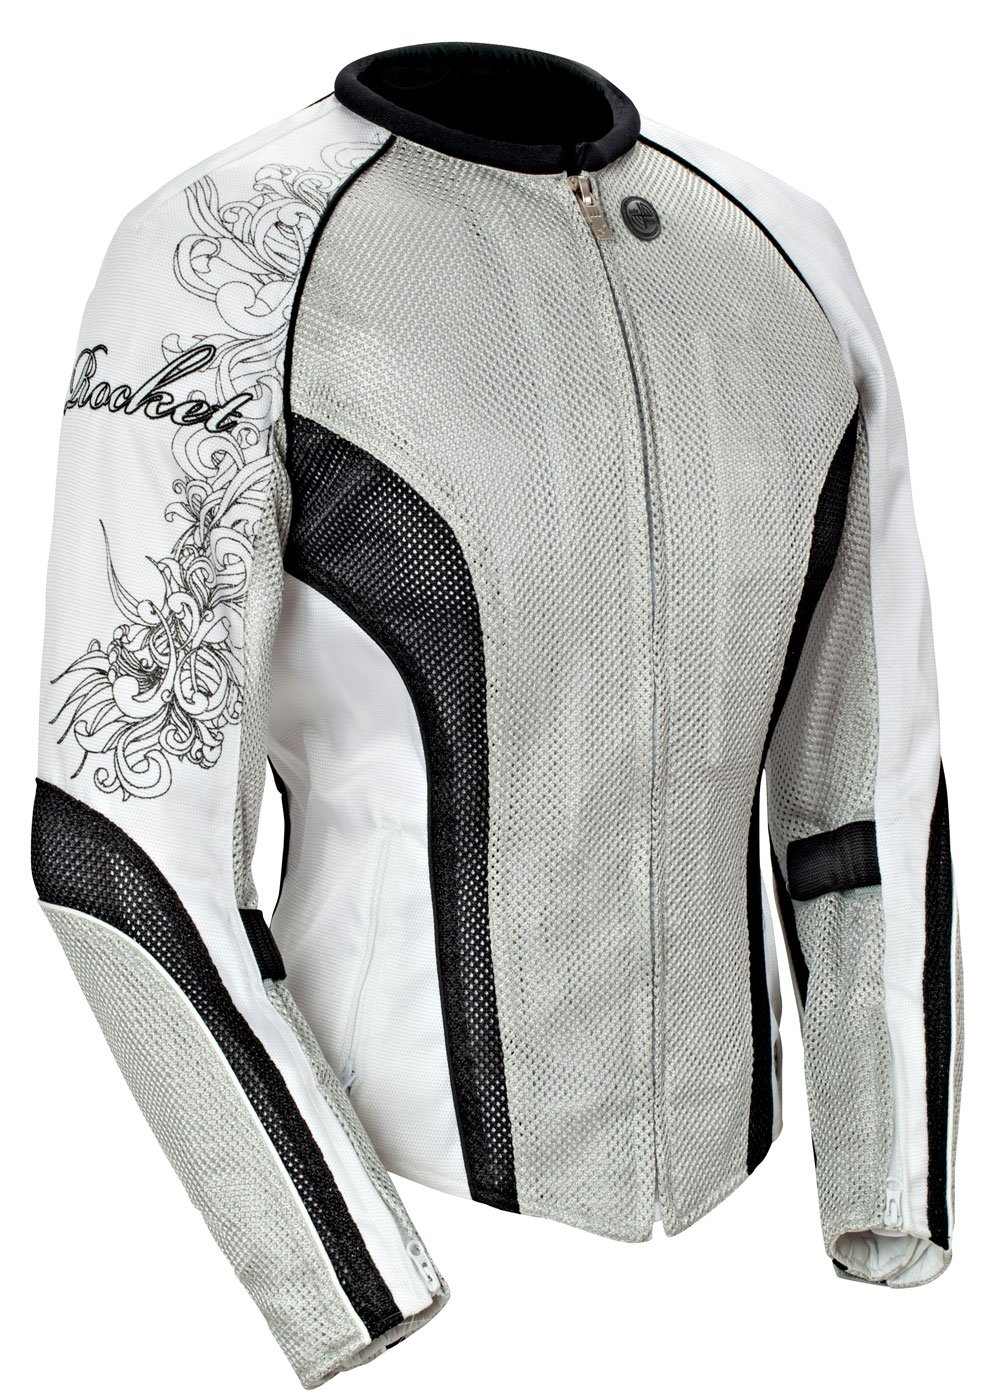 Joe Rocket Cleo 2.2 Women's Mesh Motorcycle Riding Jacket (Silver/Black/White, XXX-Large) by Joe Rocket (Image #1)